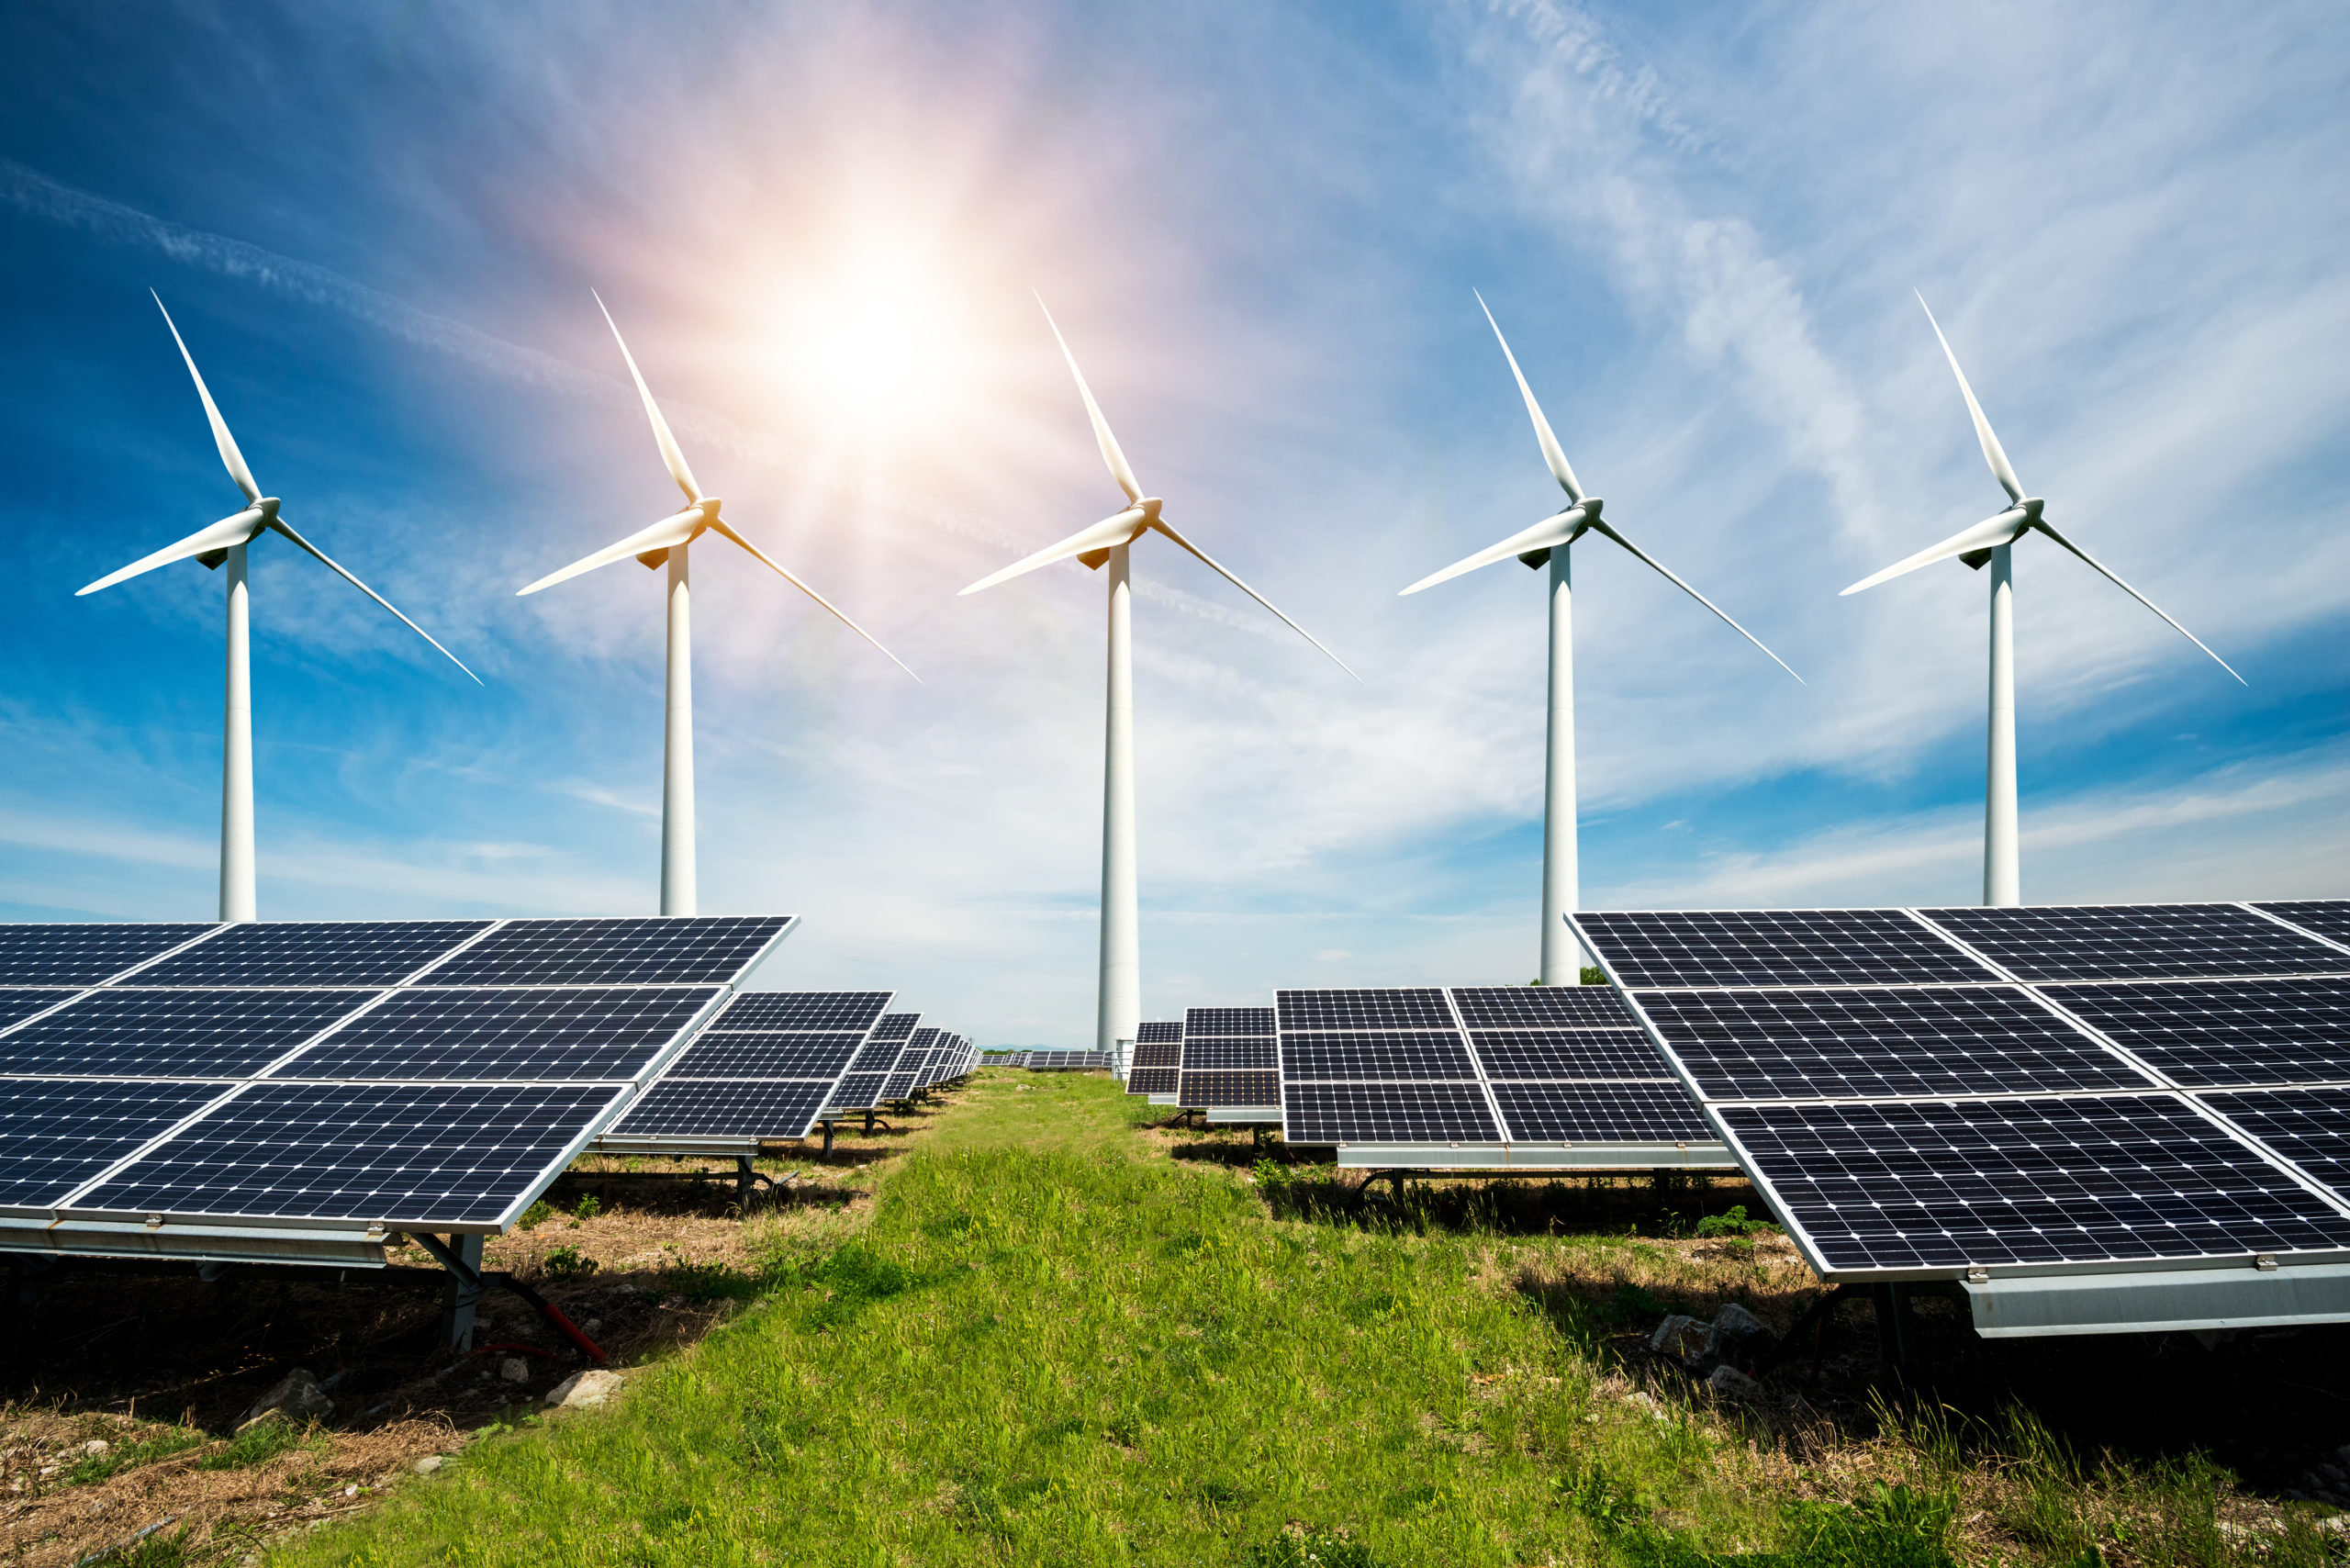 How To Combine Wind Turbine And Solar Panels Wiring? - Solyndra